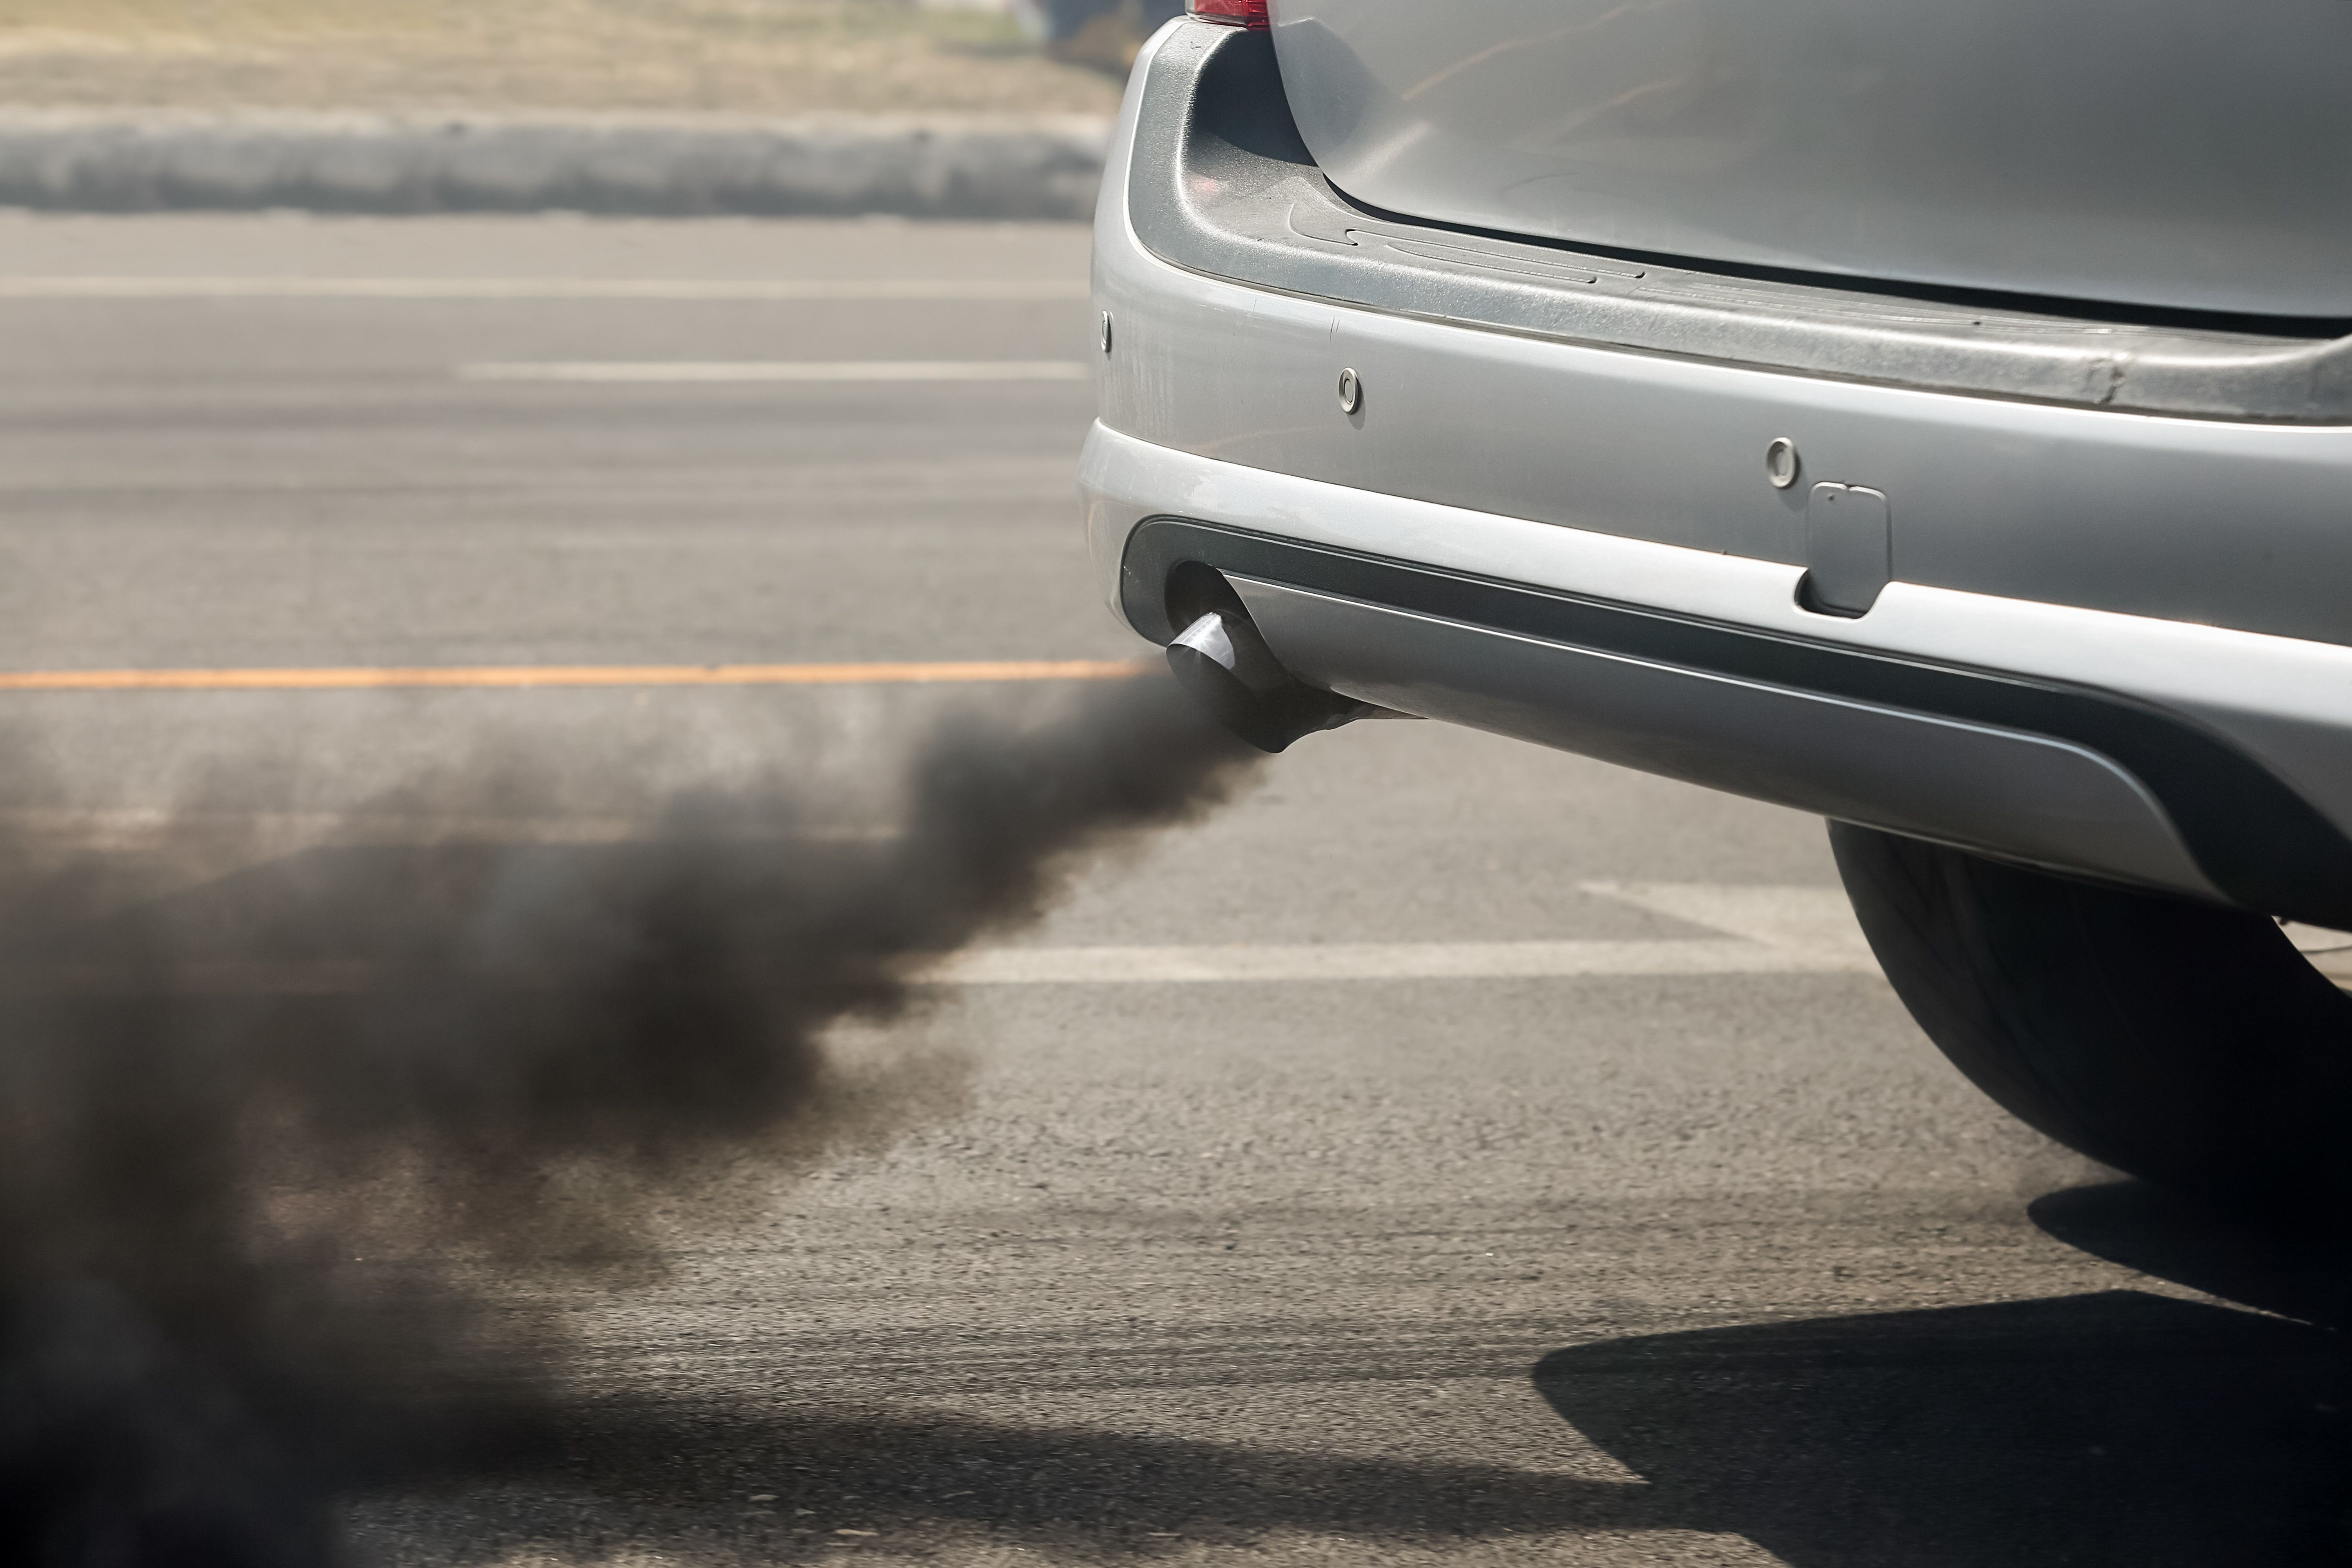 Air Pollution Caused By Cars Has Actually Dropped In The